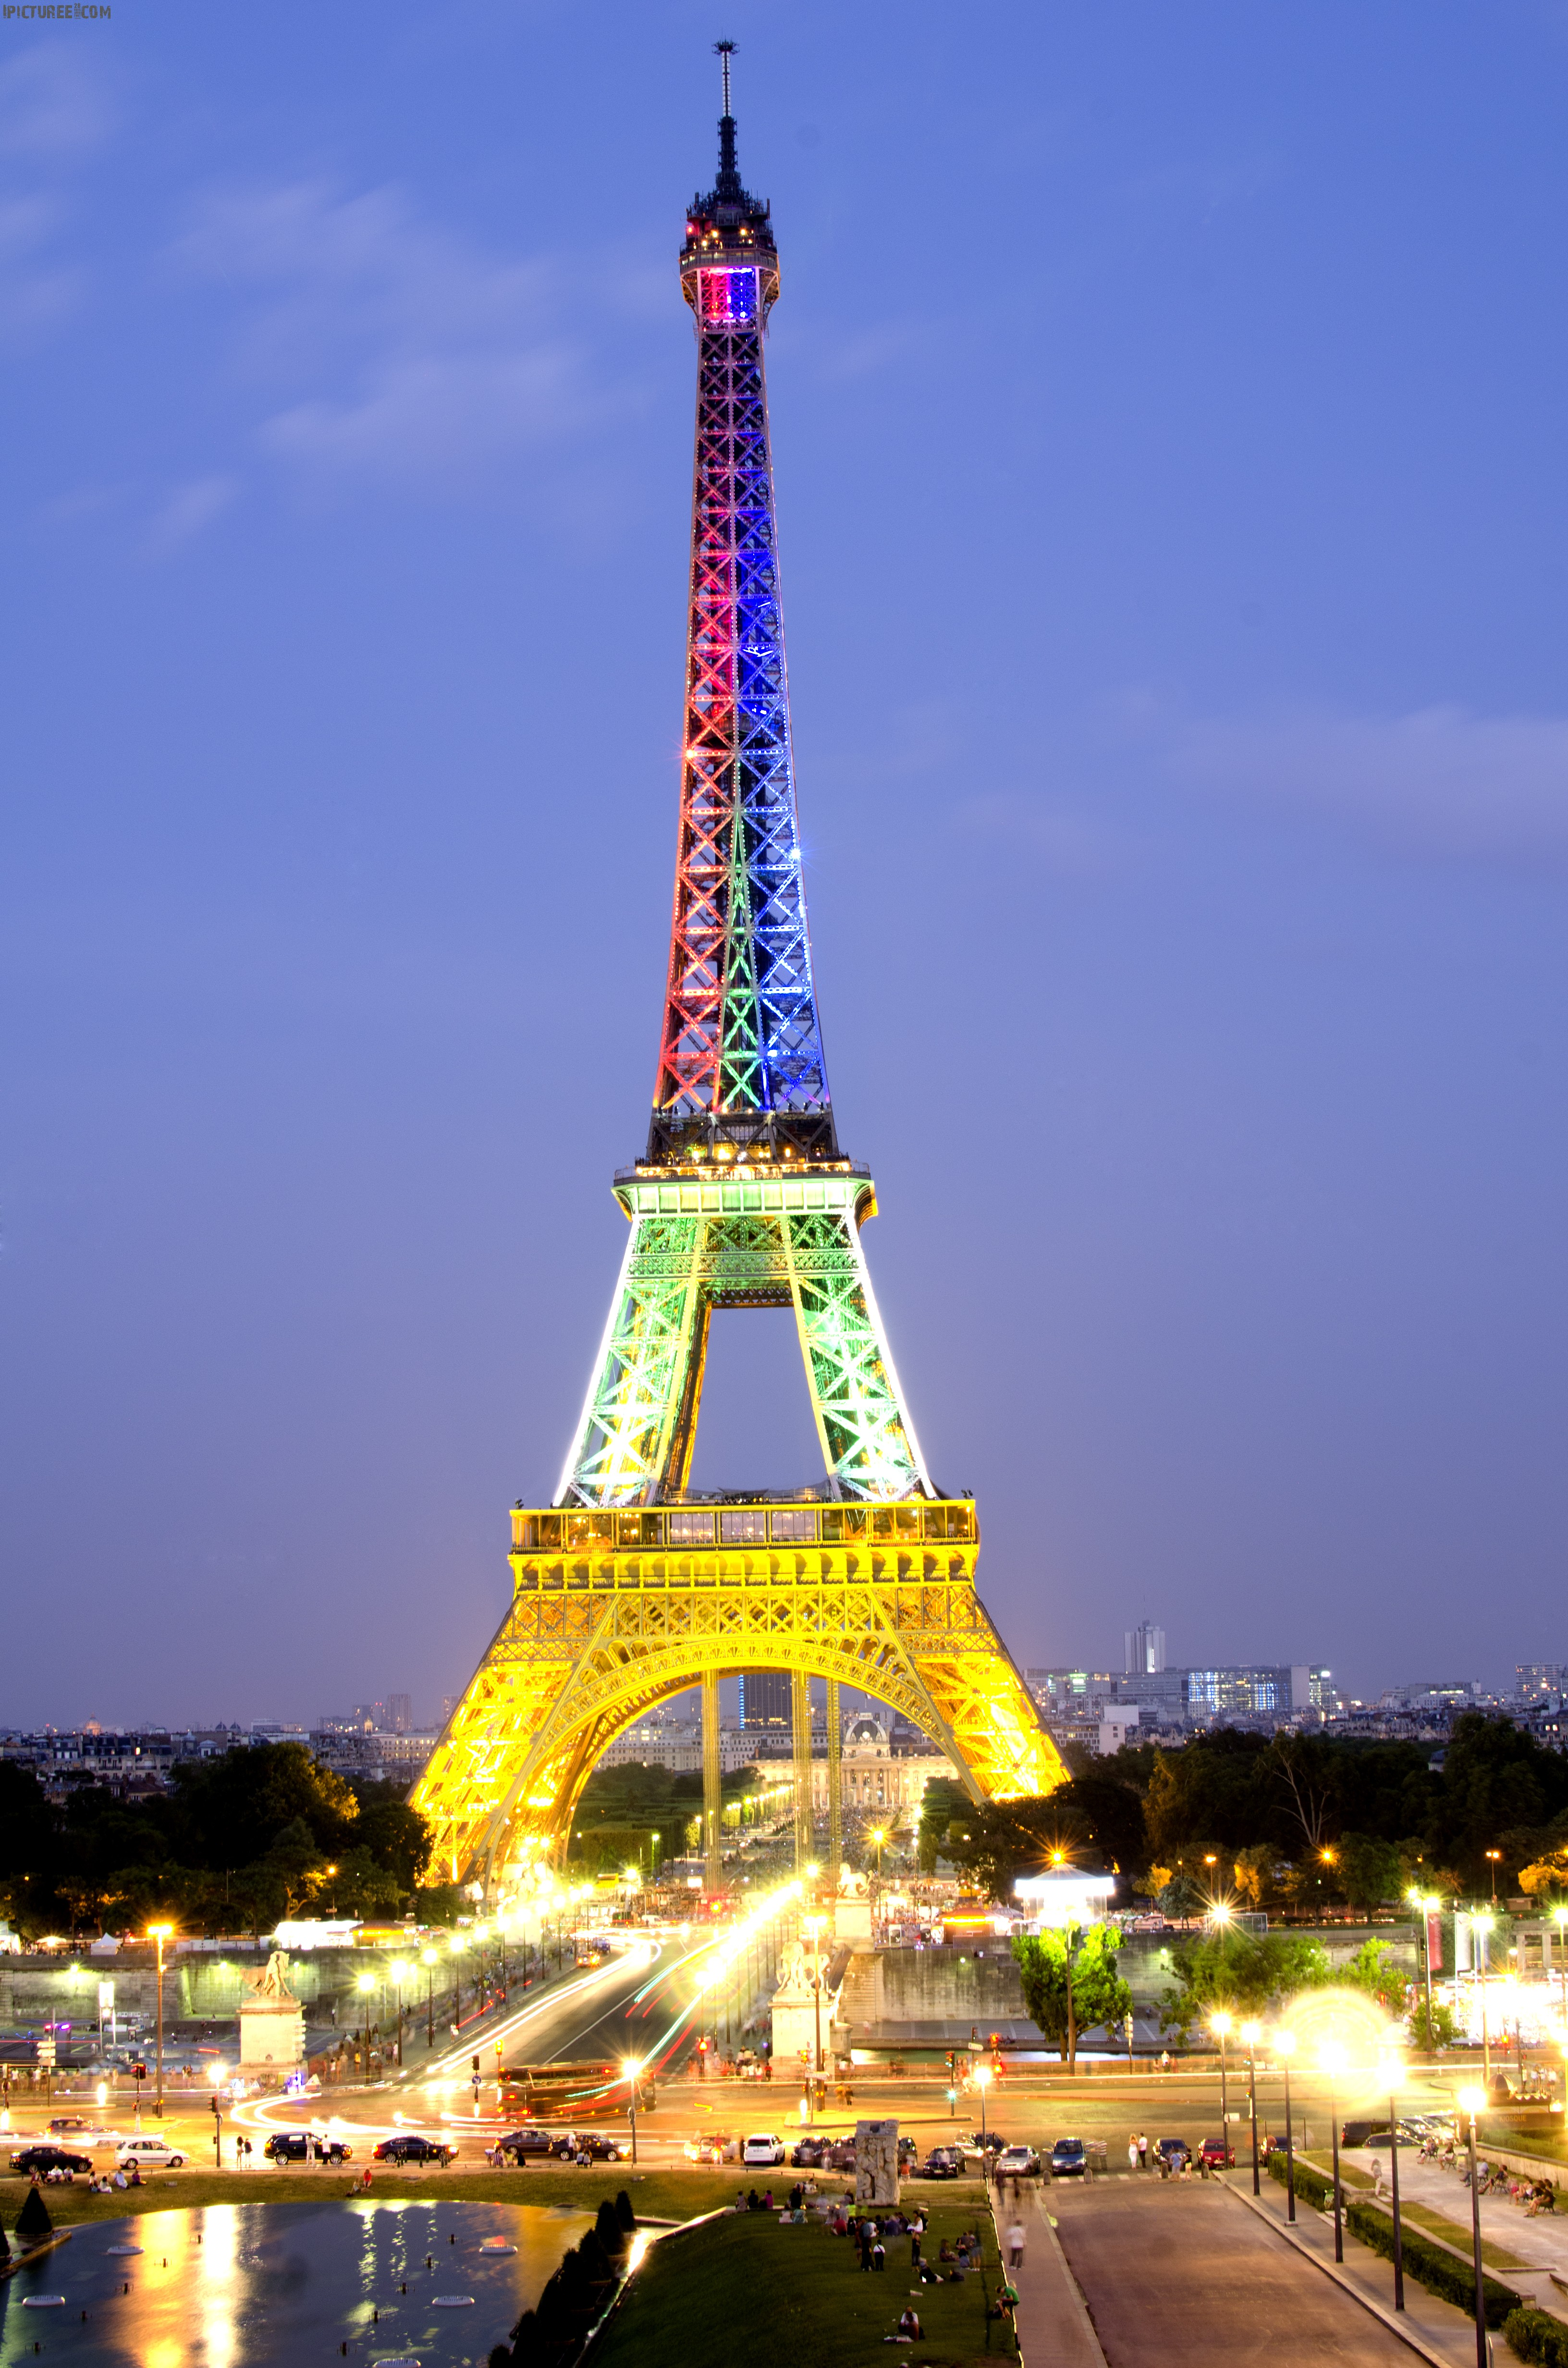 Eiffel Tower with Lights Glowing